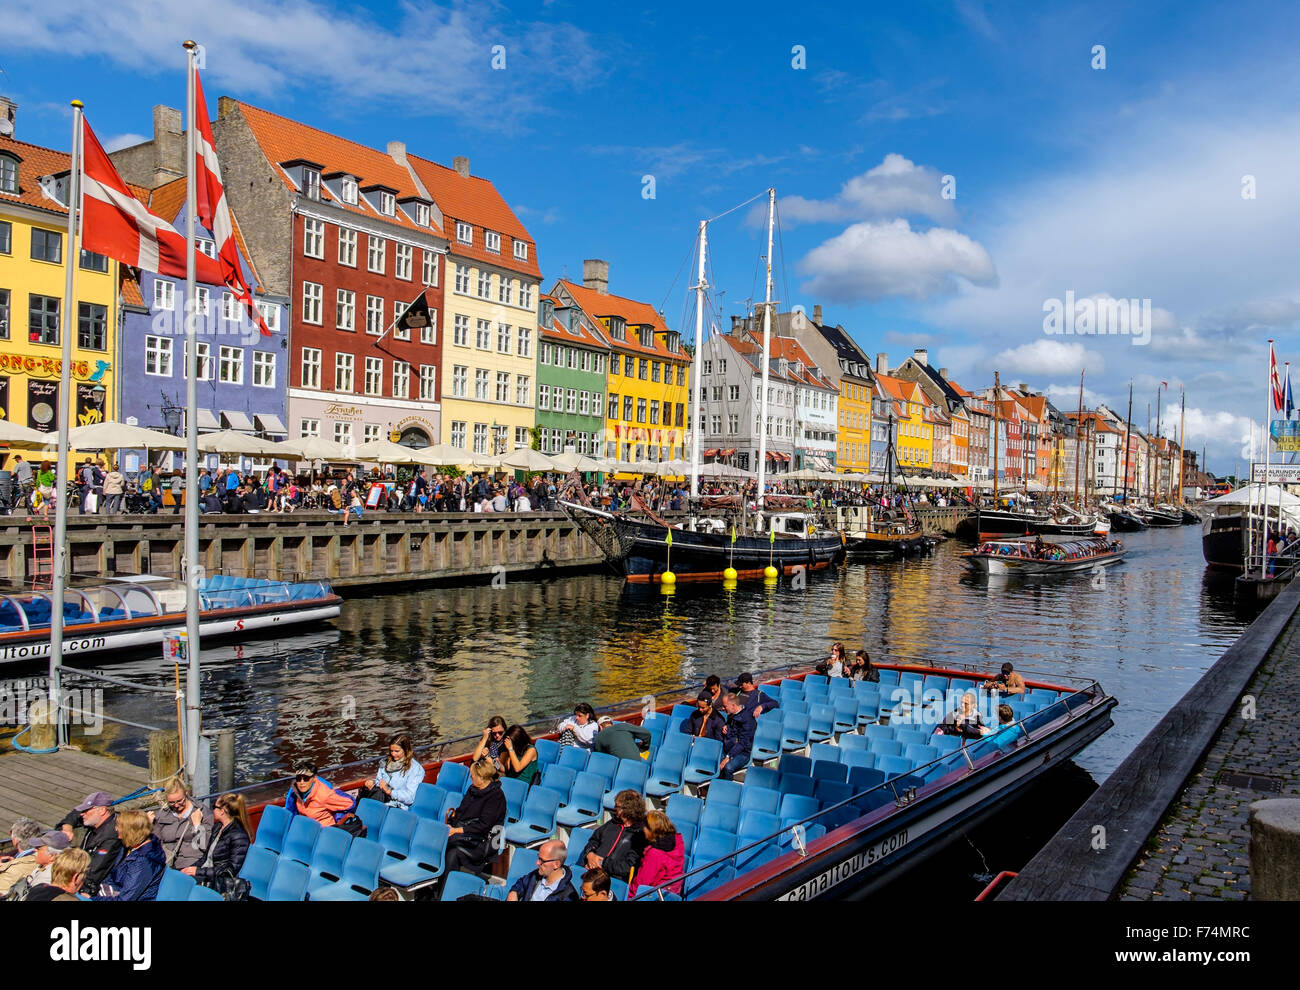 Nyhavn is a waterfront,canal and entertainment district in Copenhagen, Denmark - Stock Image